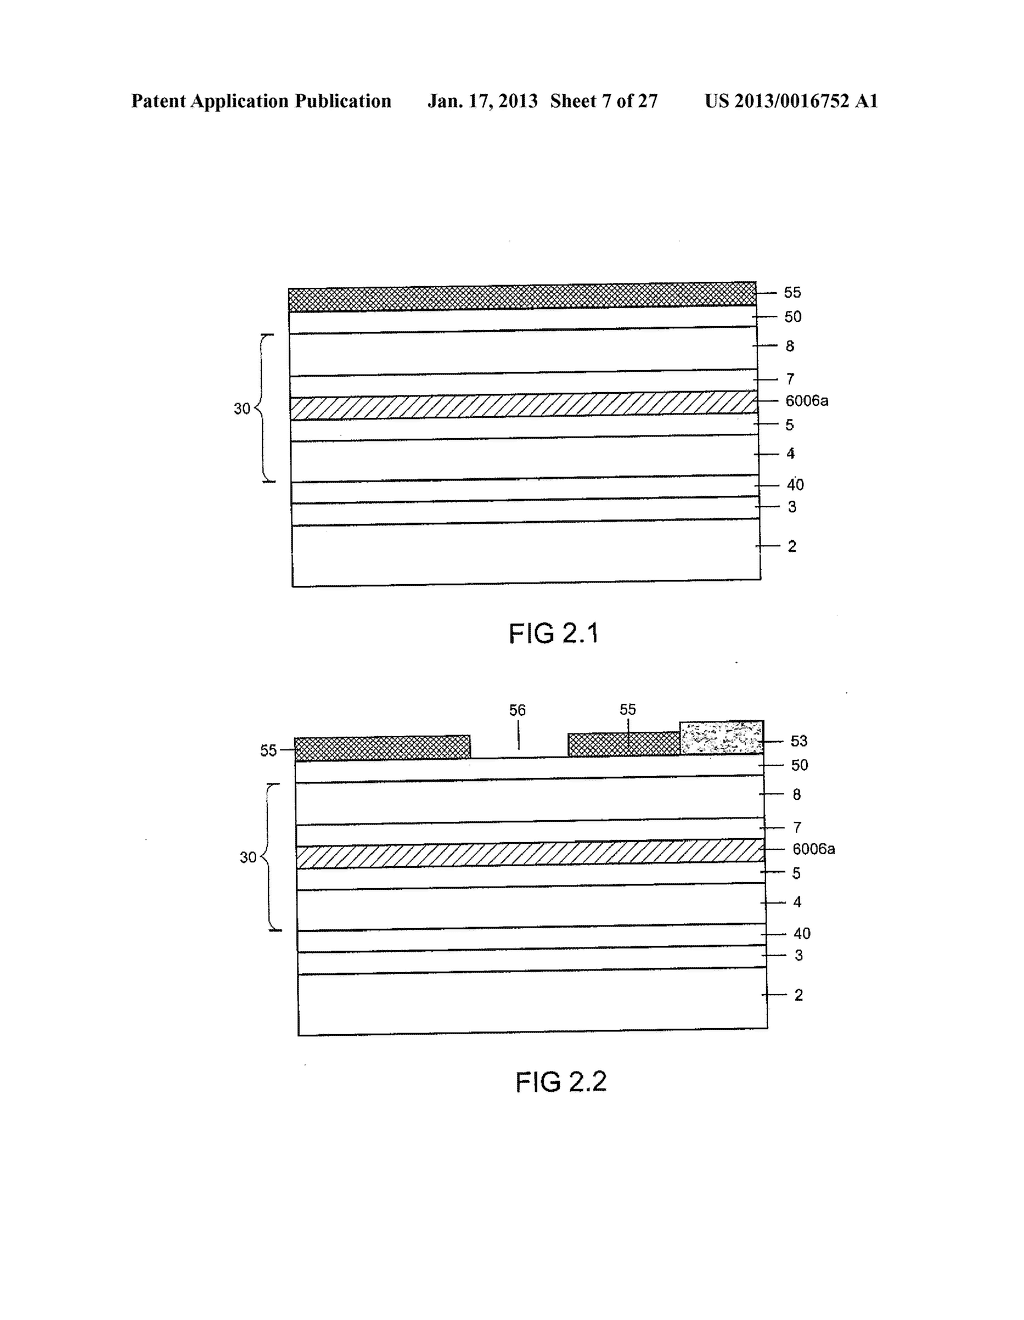 Laser Diode Assembly and Method for Producing a Laser Diode AssemblyAANM Lell; AlfredAACI Maxhutte-HaidhofAACO DEAAGP Lell; Alfred Maxhutte-Haidhof DEAANM Straussburg; MartinAACI DonaustaufAACO DEAAGP Straussburg; Martin Donaustauf DE - diagram, schematic, and image 08